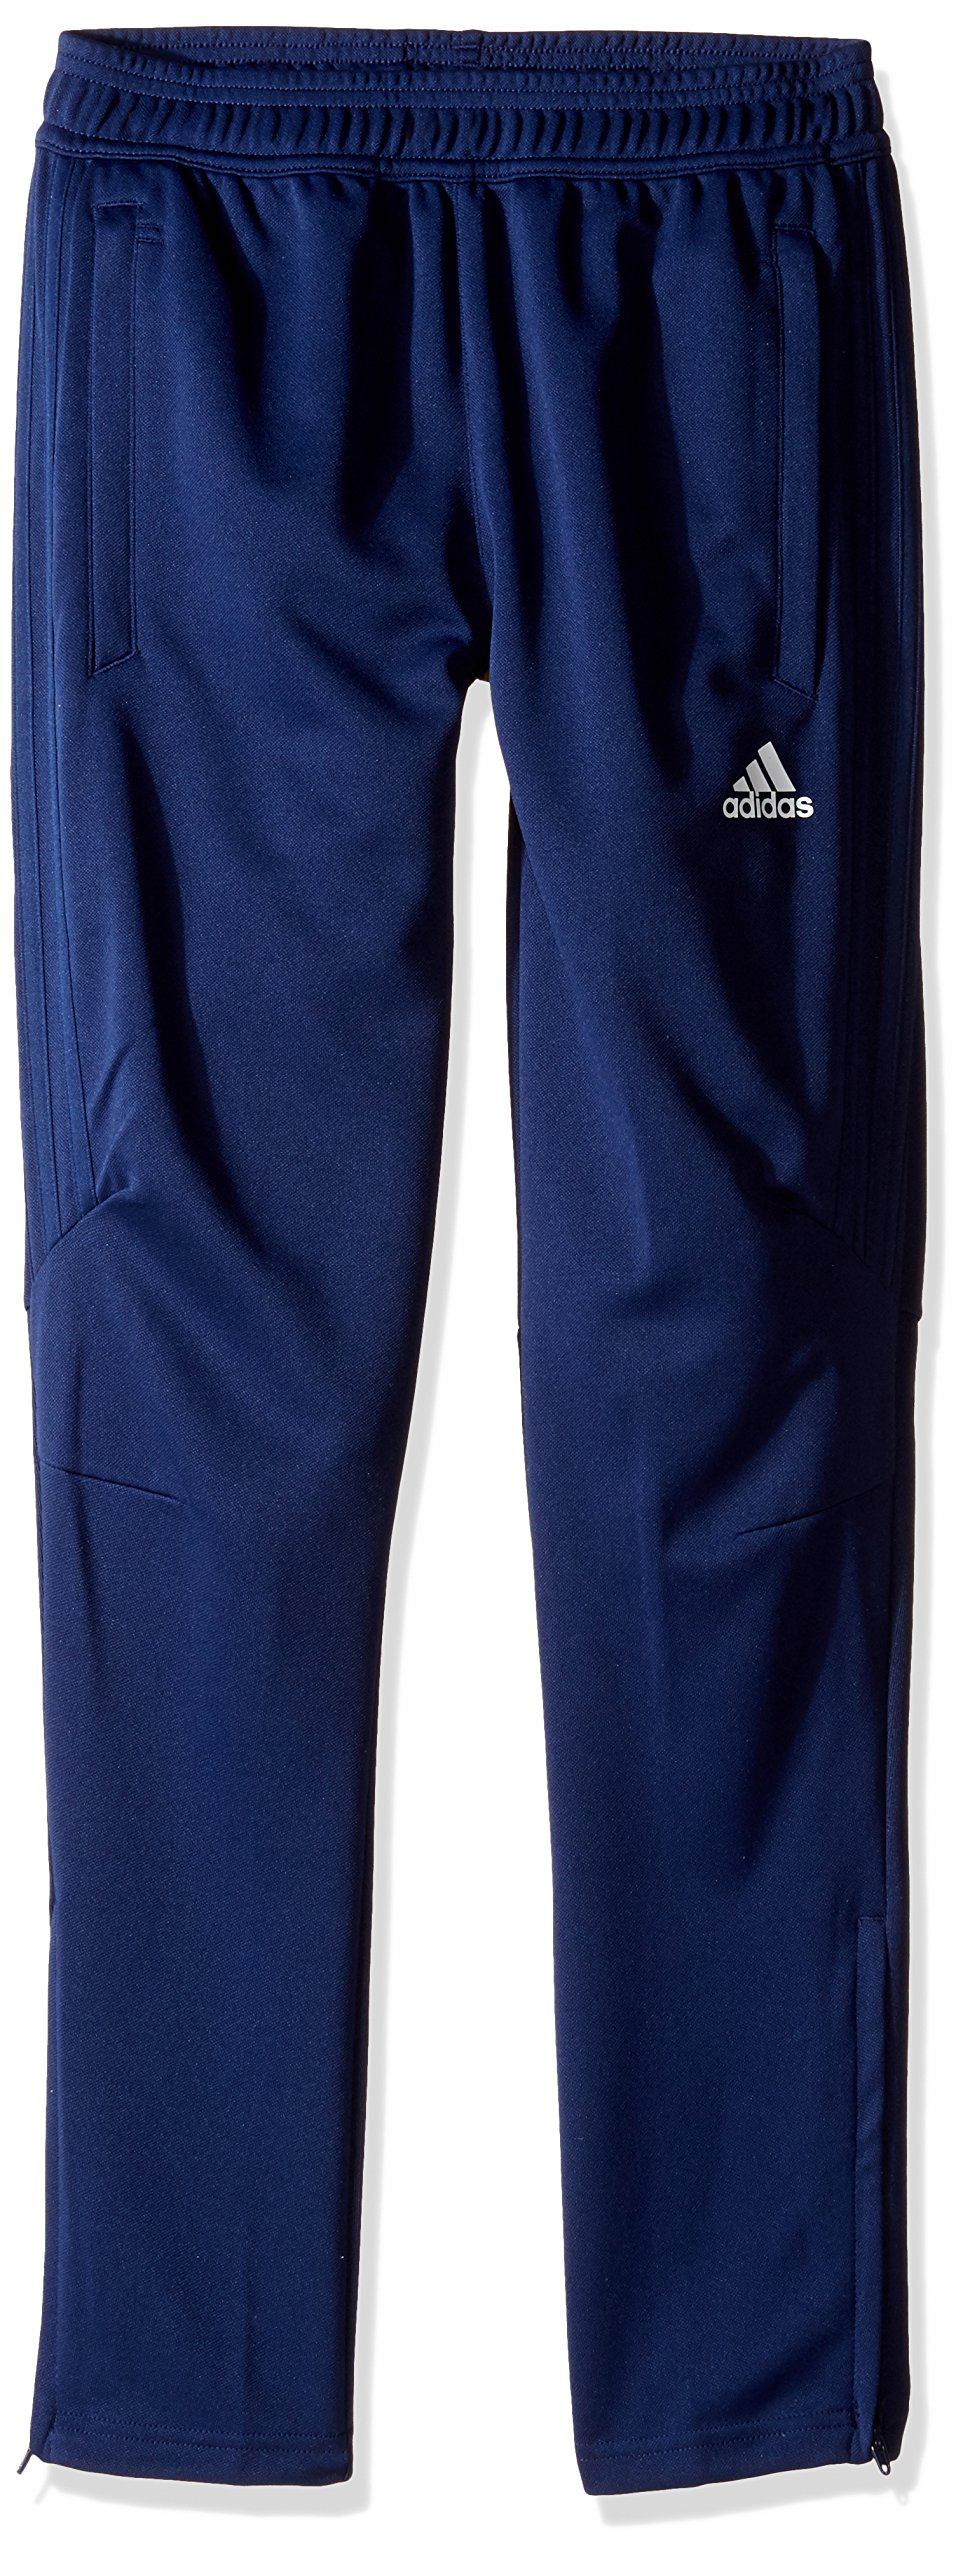 adidas Youth Soccer Tiro 17 Pants, Small - Dark Blue/White